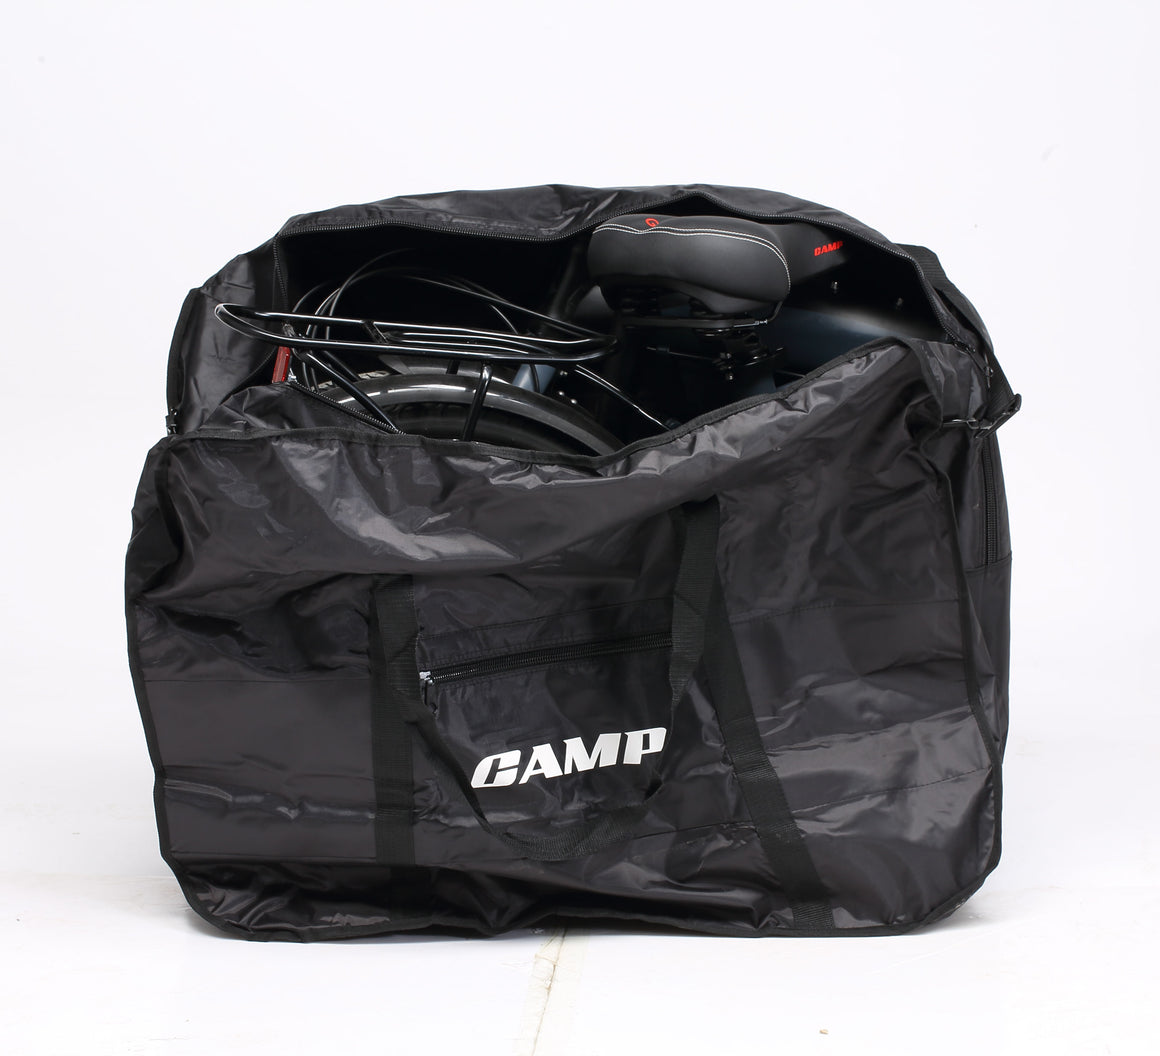 CAMP Folding Bike Carry Bag